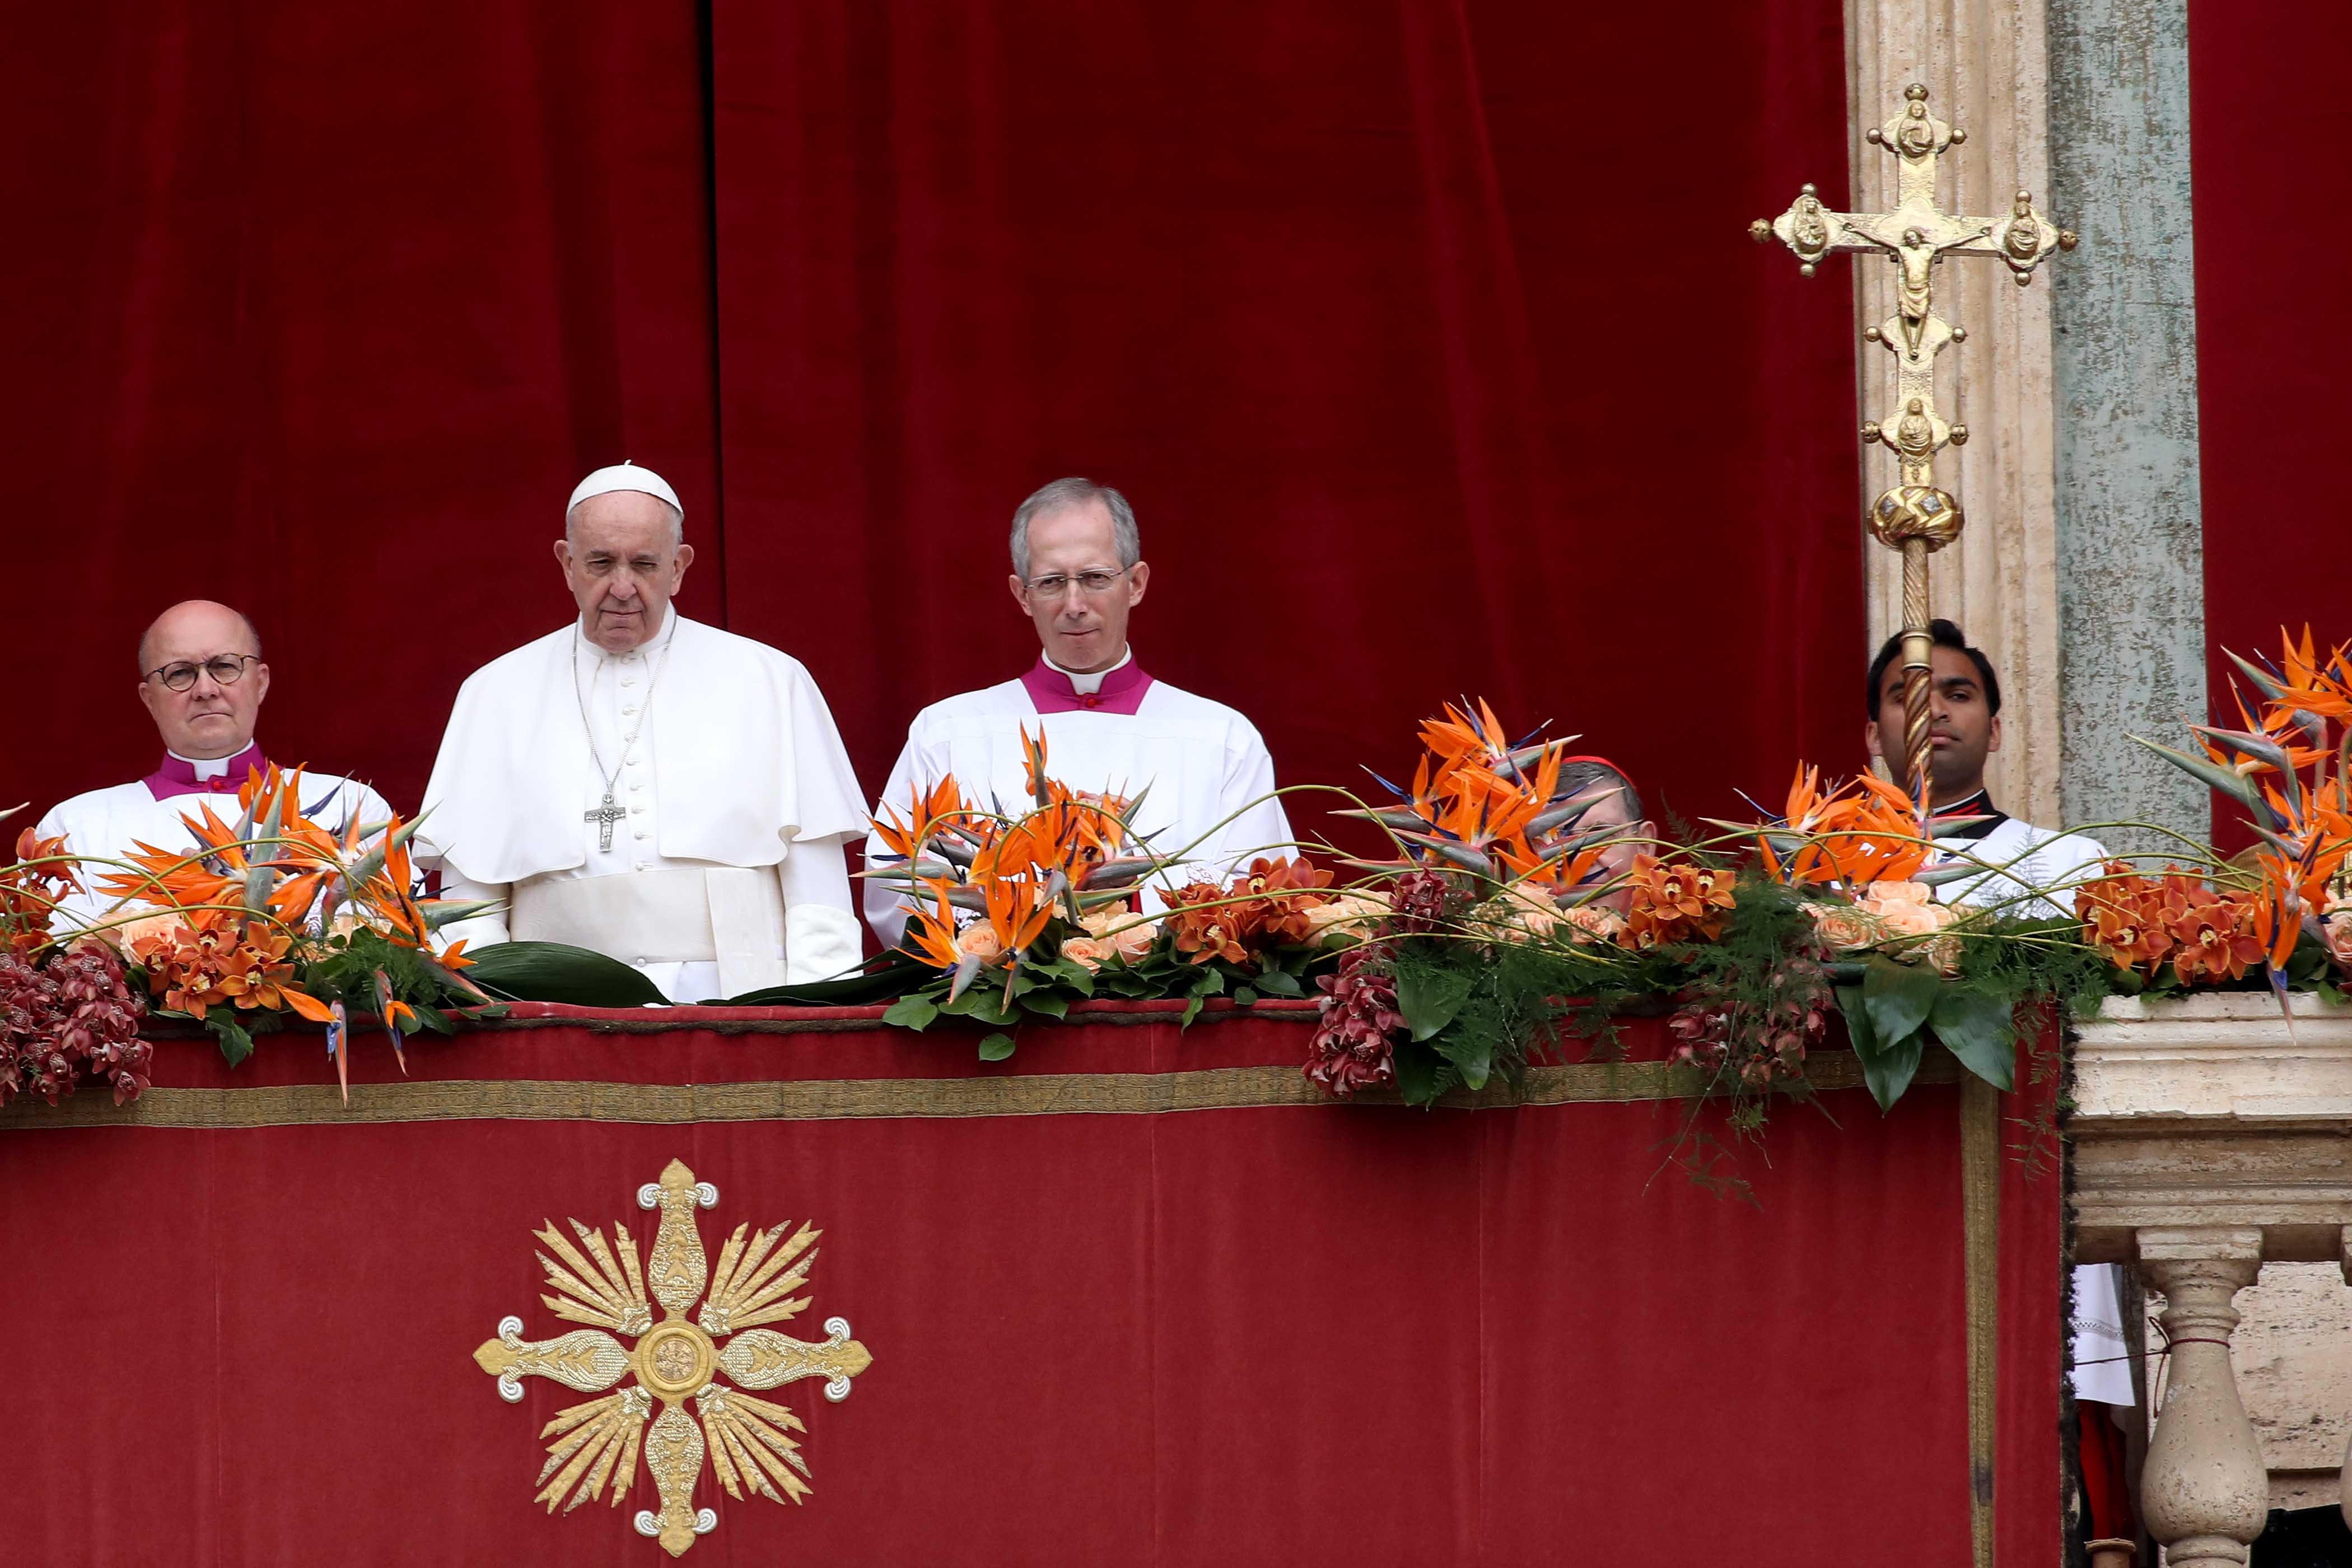 Pope Francis delivering the Easter Urbi et Orbi blessing message from the St Peter's Basilica, in Vatican City | Photo: Getty Images